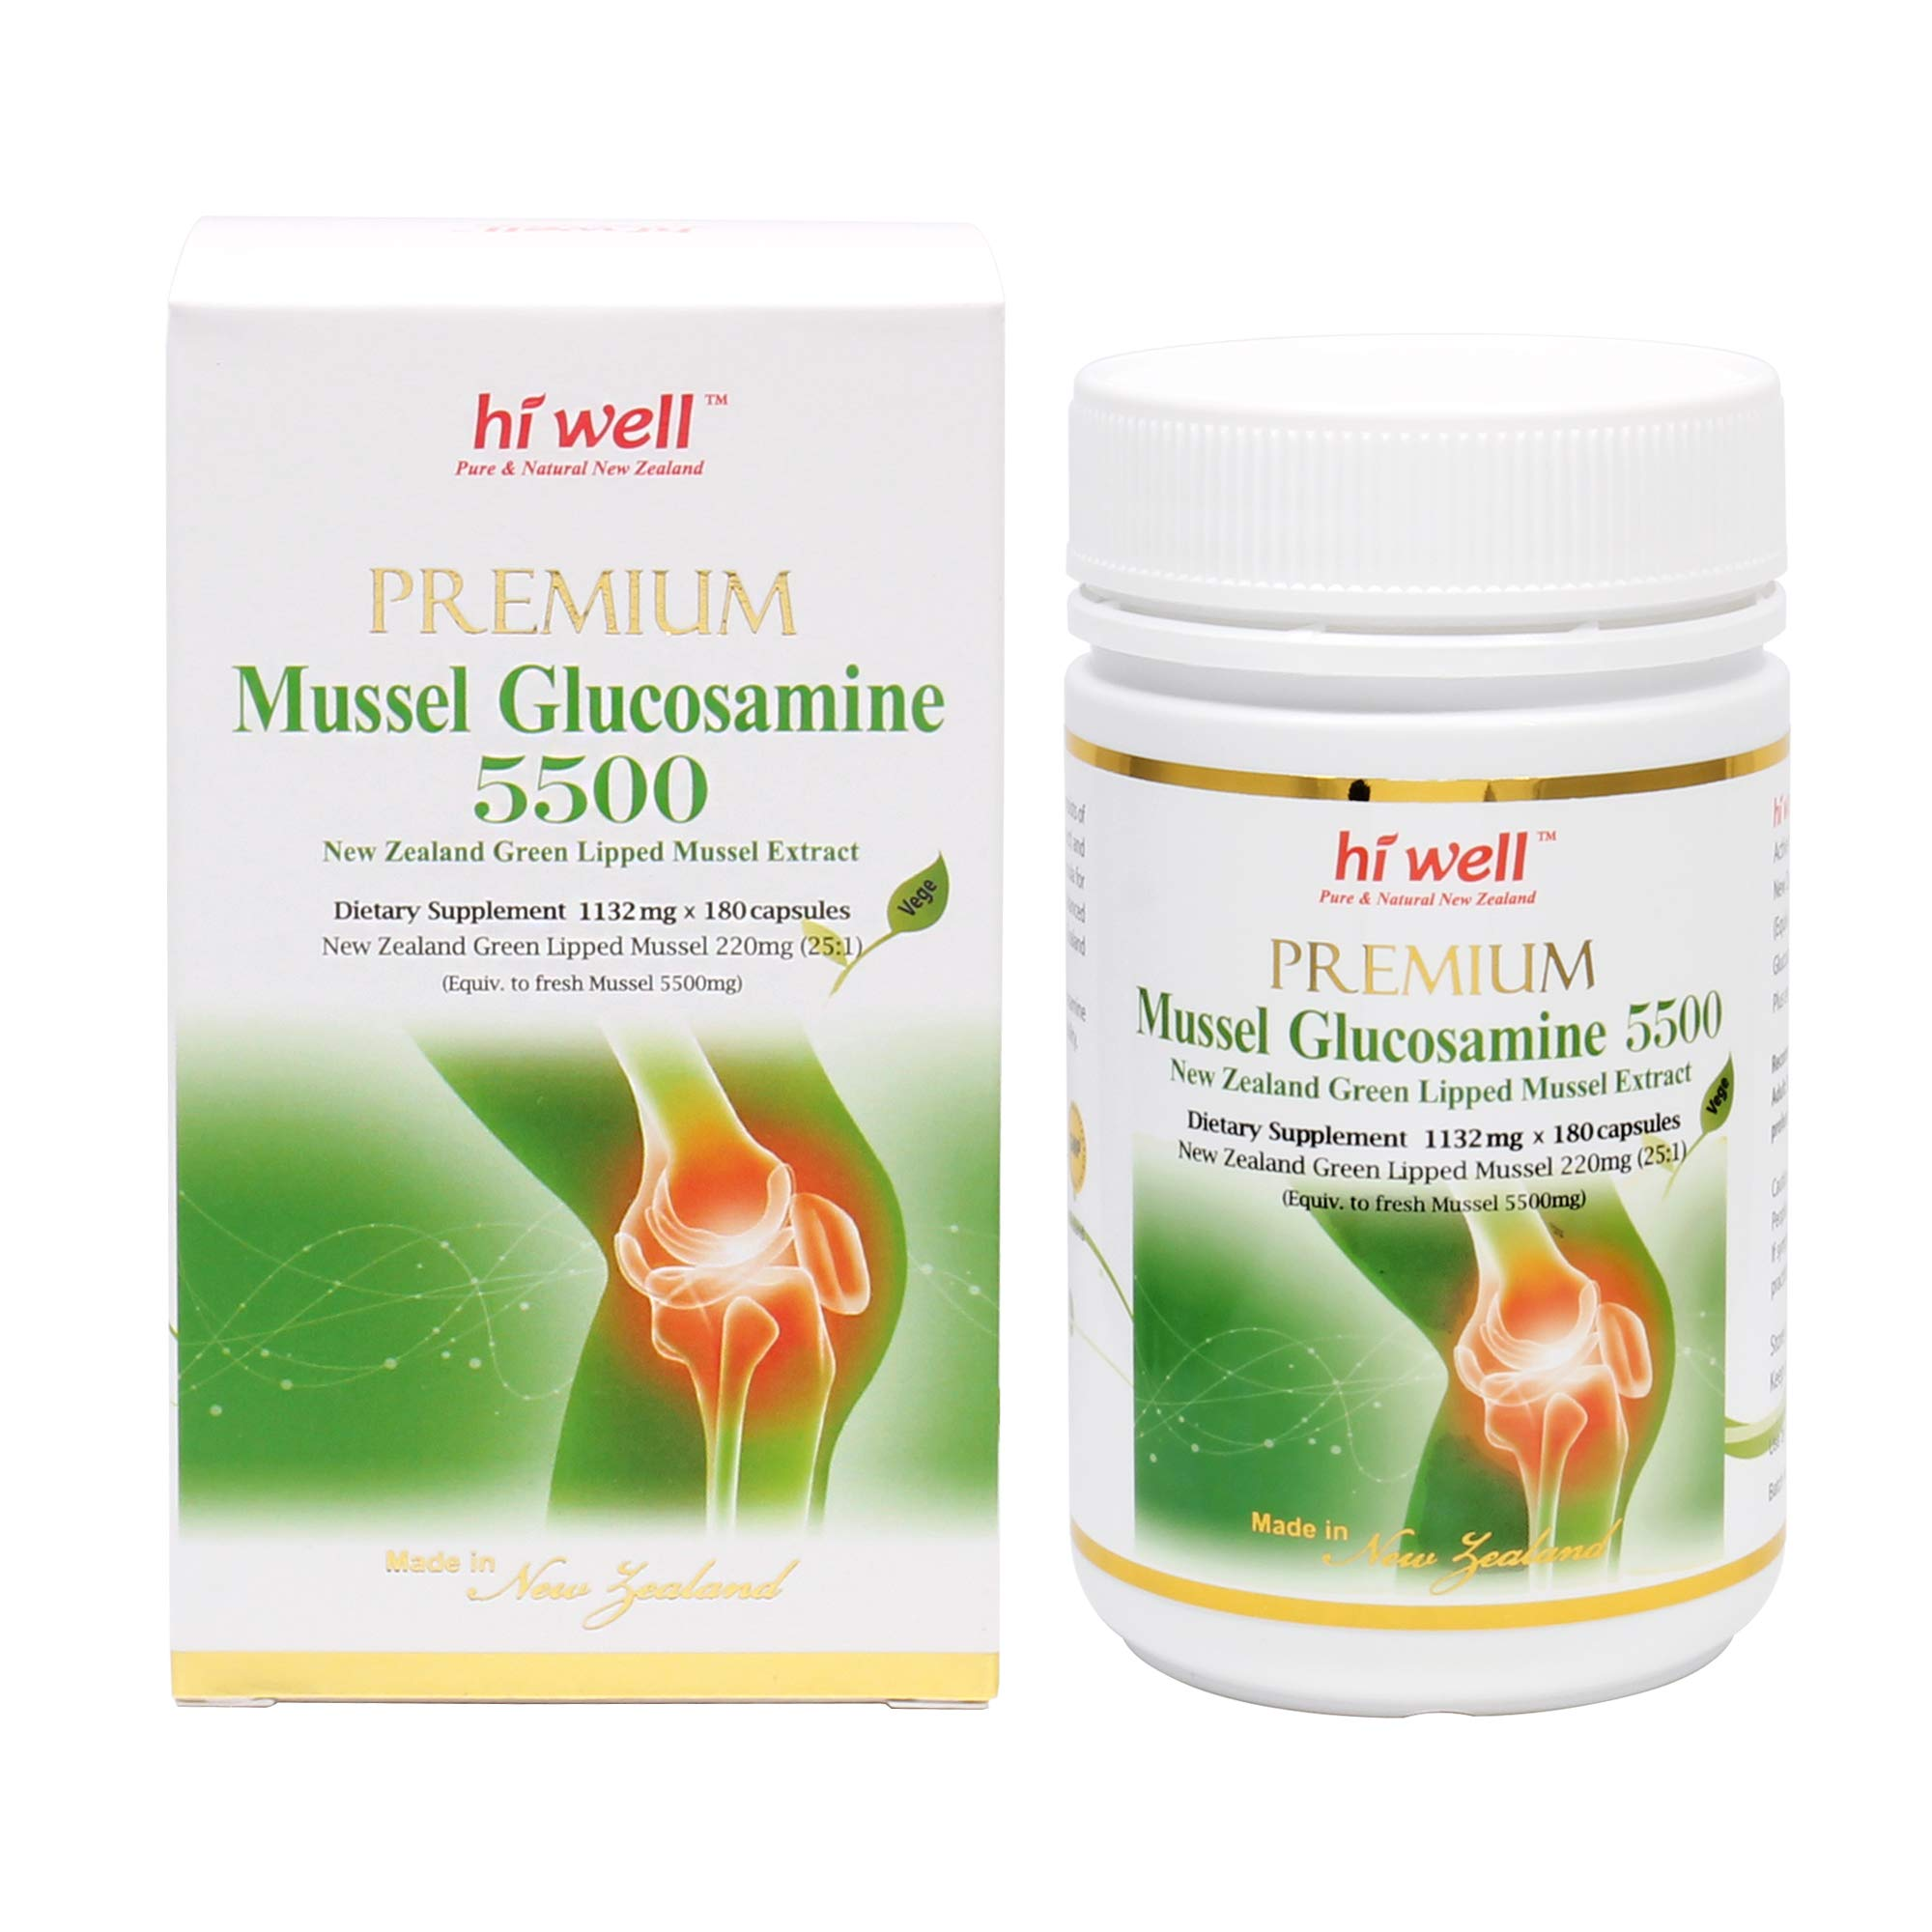 Hi Well Premium Mussel & Glucosamine 5500mg 180 Capsules New Zealand Green Lipped Mussel Extract Joint Health Supplements